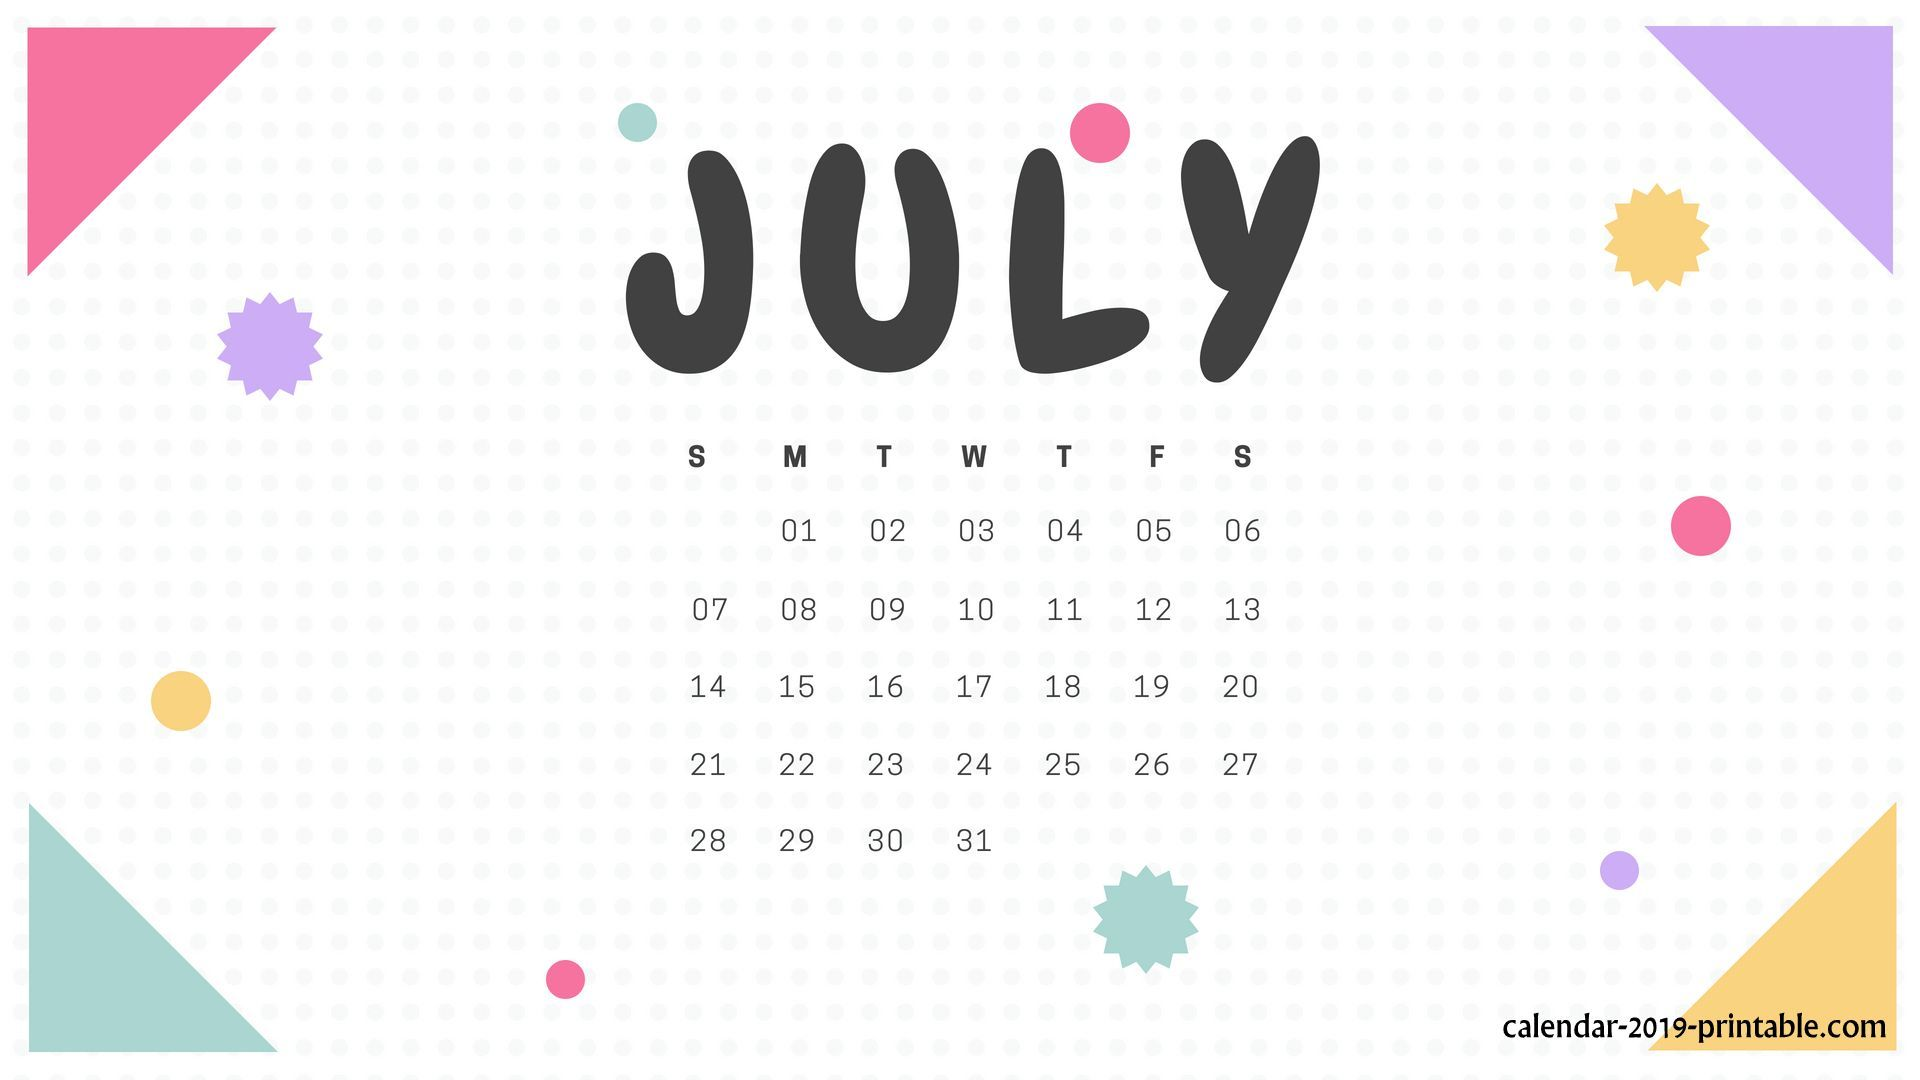 july 2019 calendar wallpaper Calendar 2019 Wallpapers 2019 1920x1080